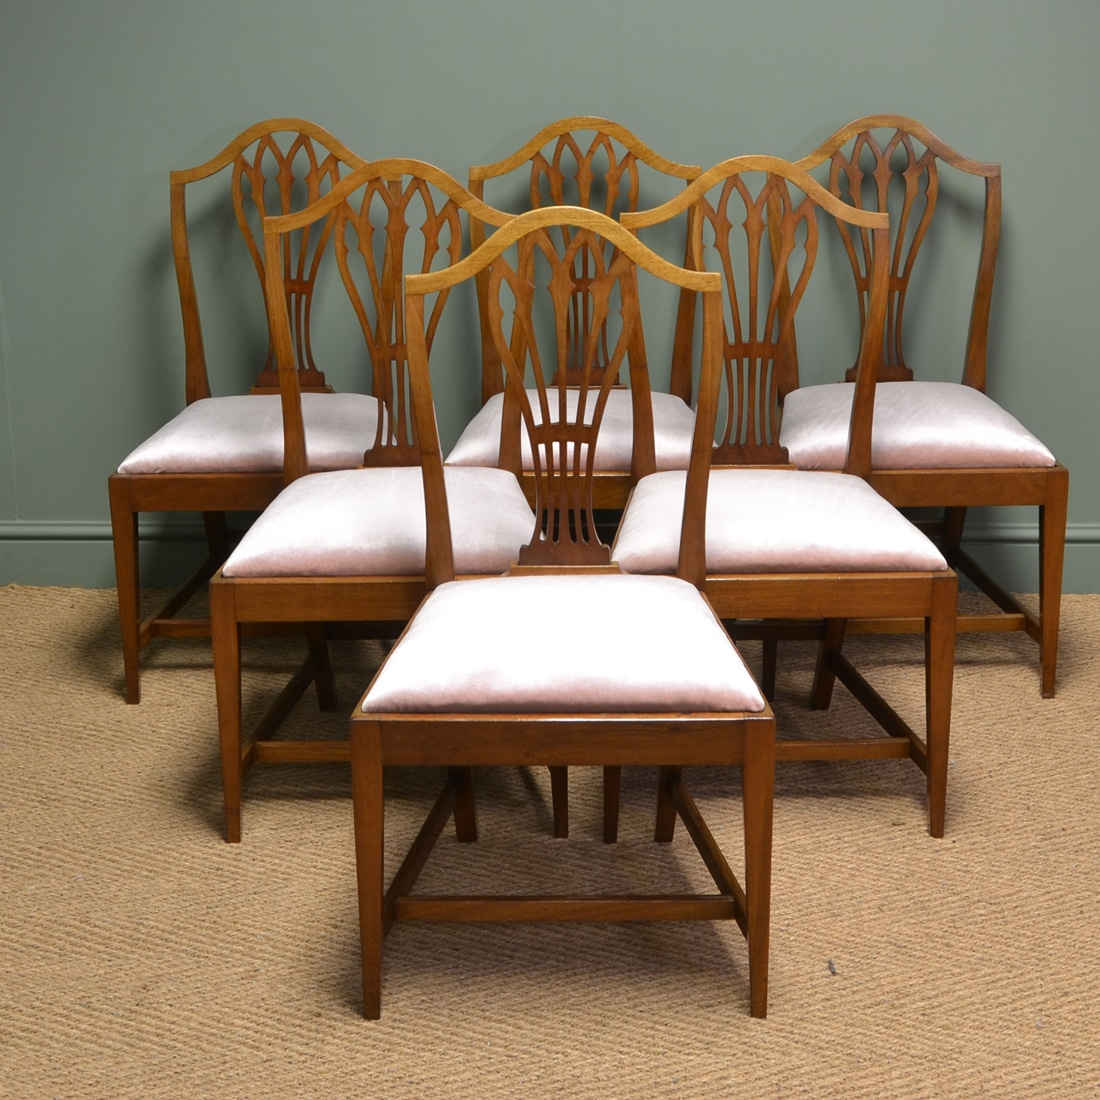 Elegant Chairs Elegant Mellow Mahogany Edwardian Hepplewhite Design